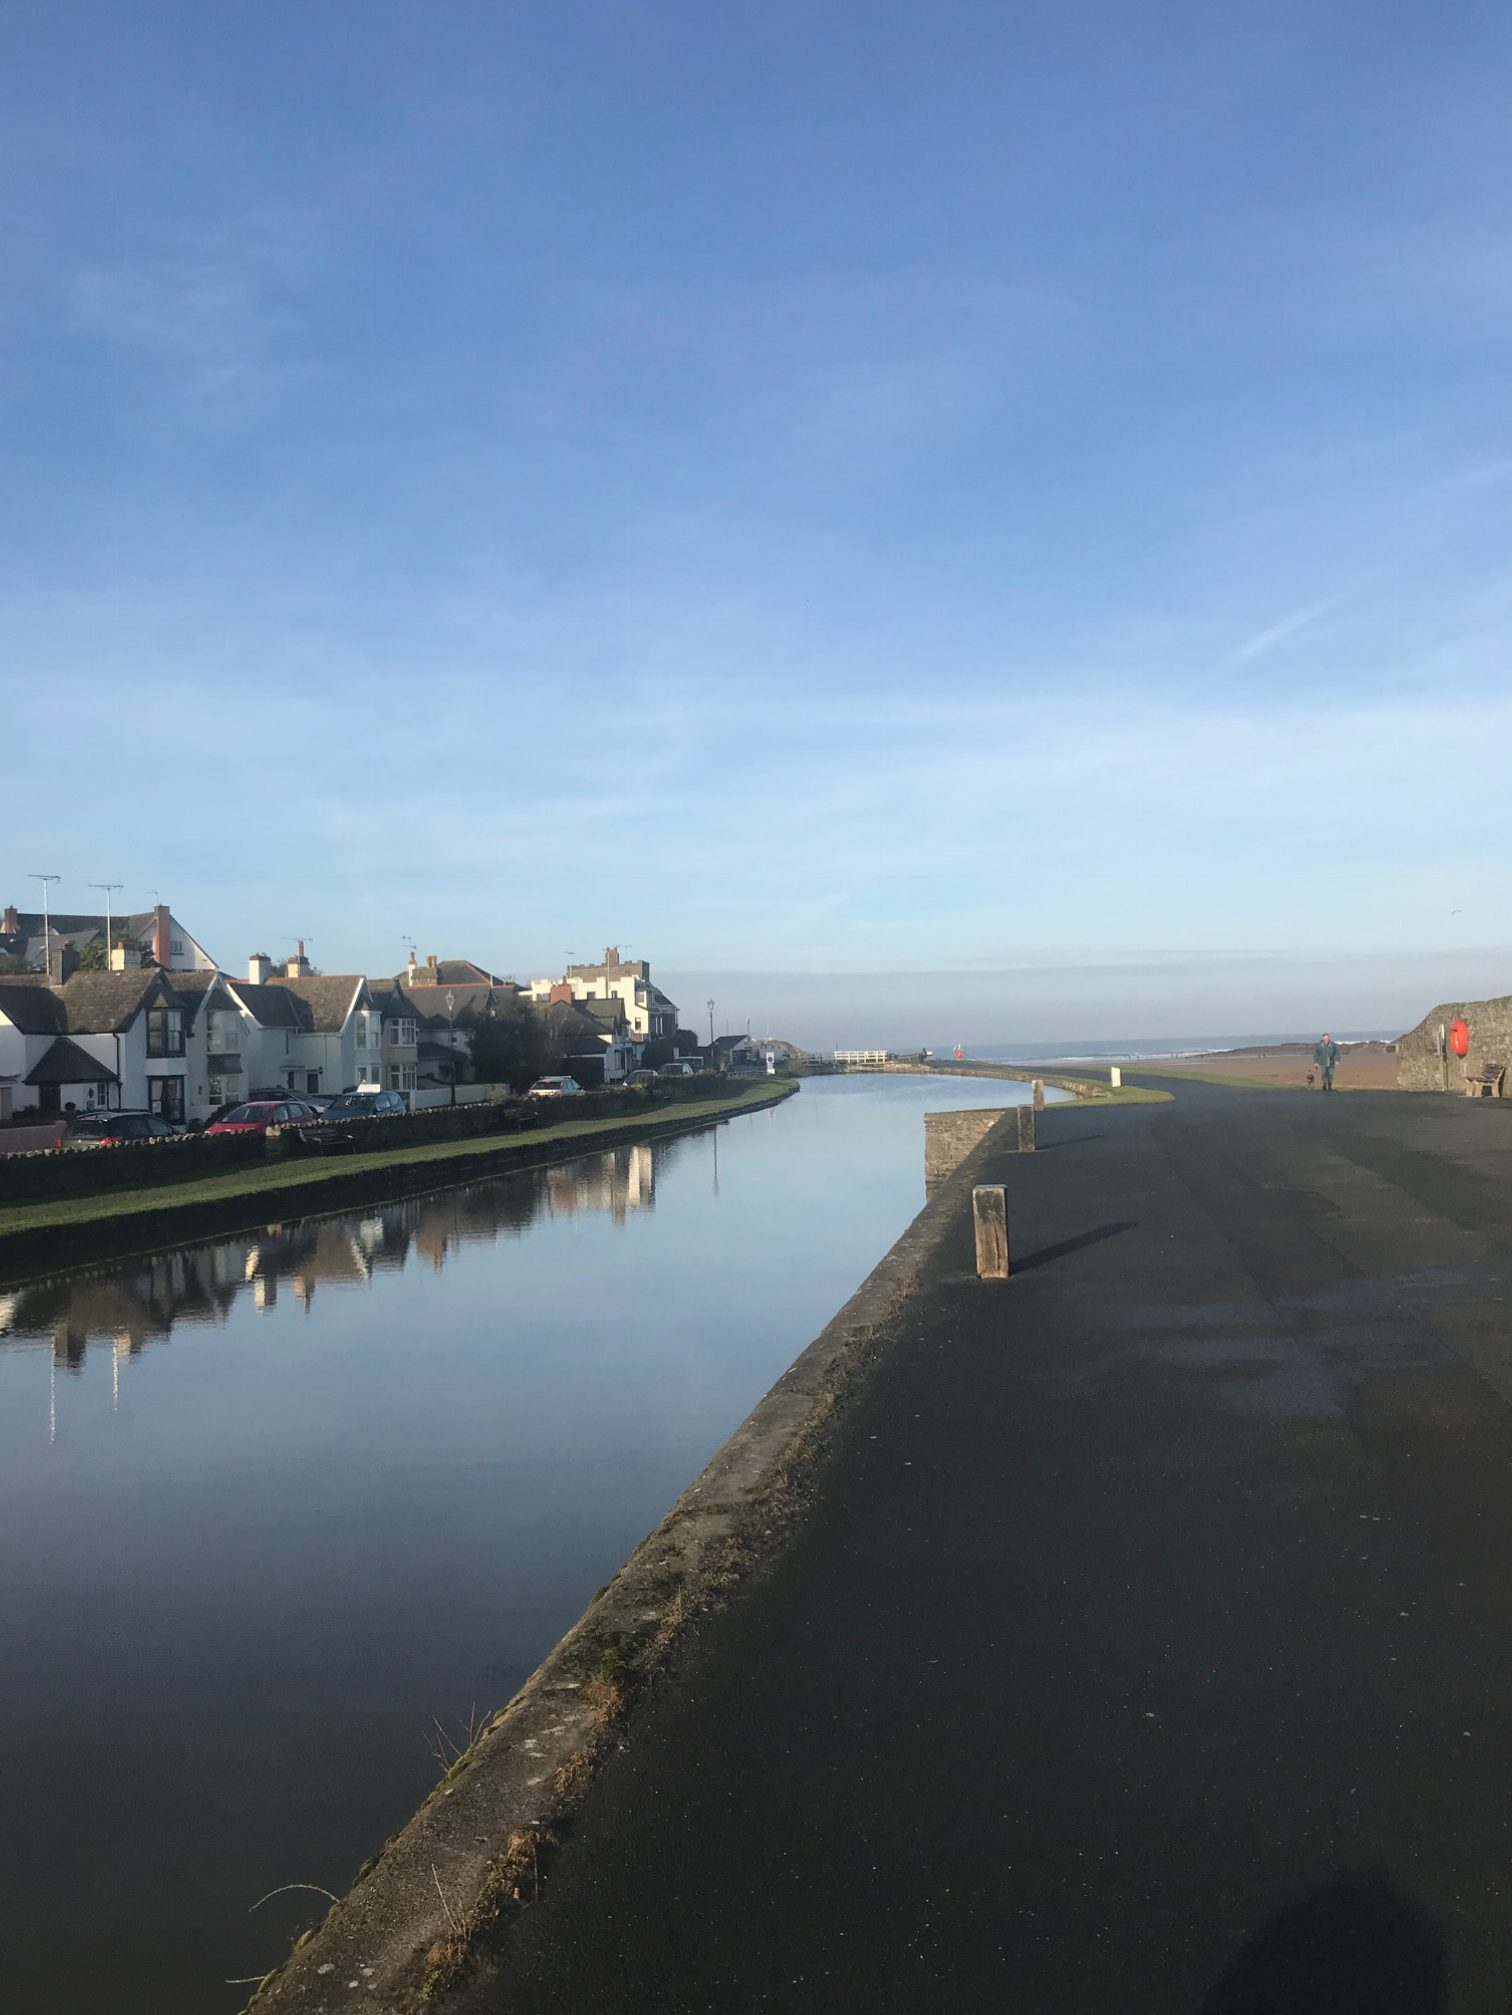 Walk along Bude canal from Marhamchurch to Summerleaze beach.